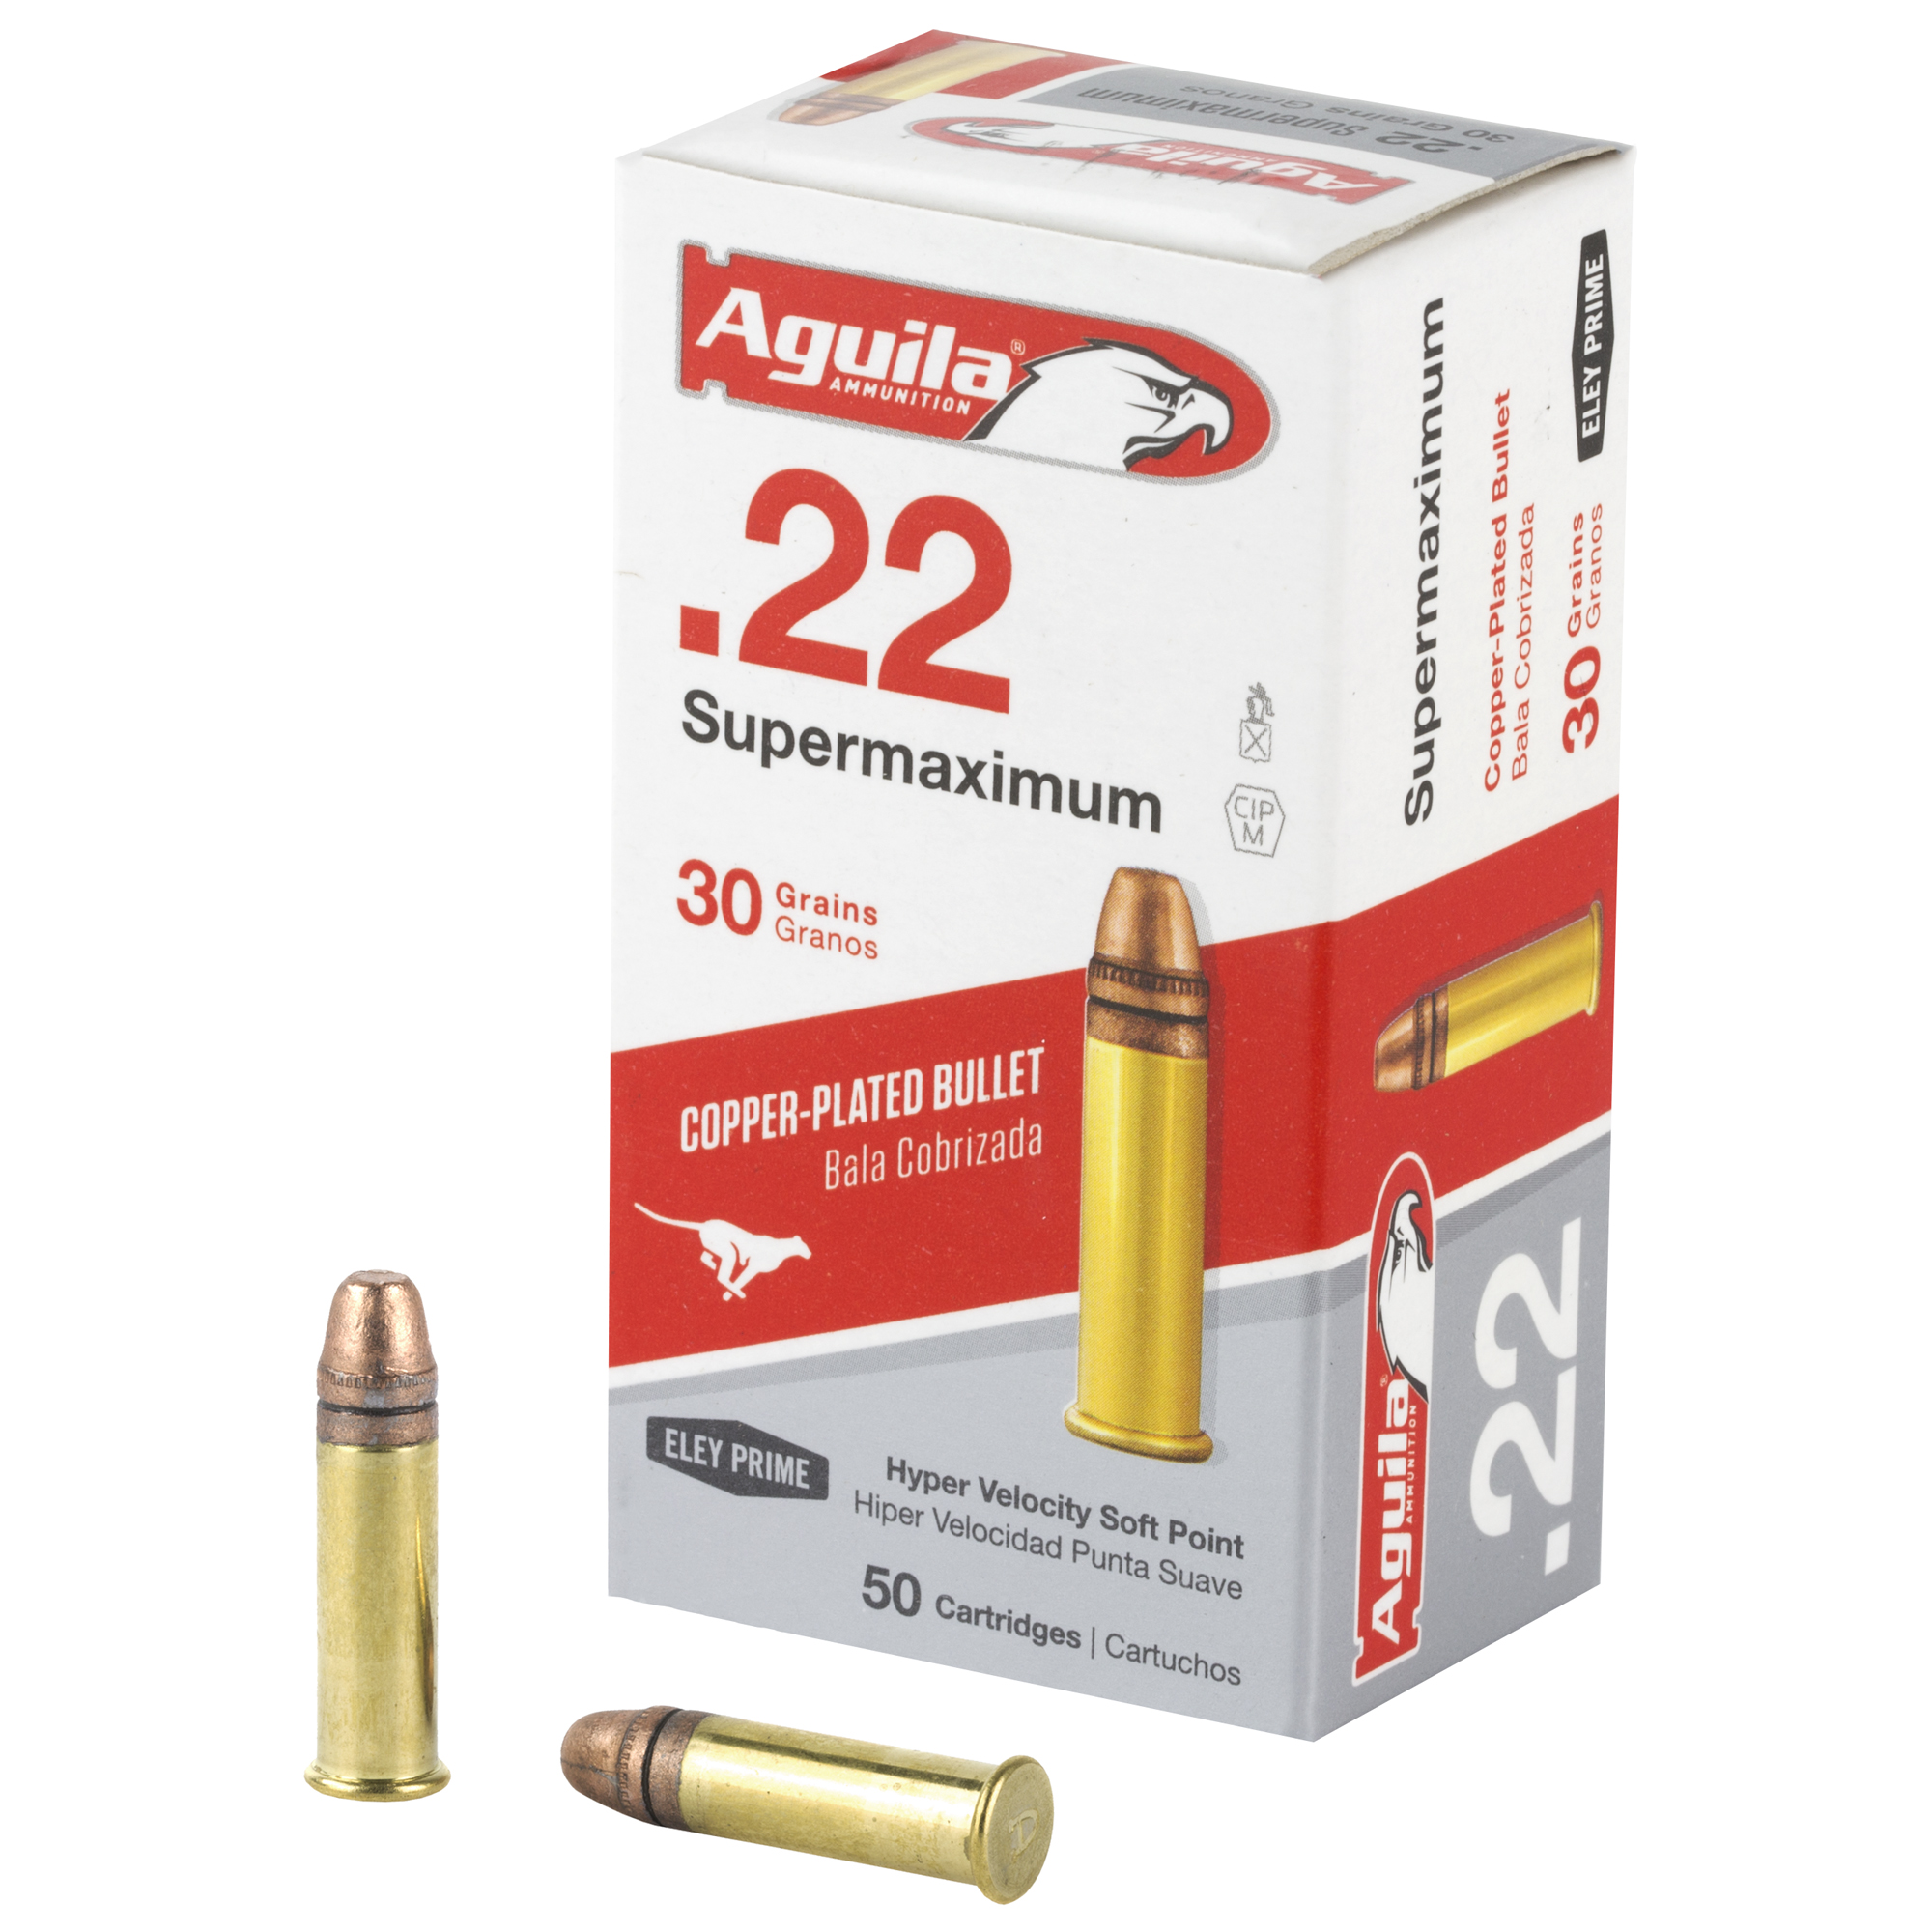 Aguila 22lr Supermax Sp 30gr 50/5000